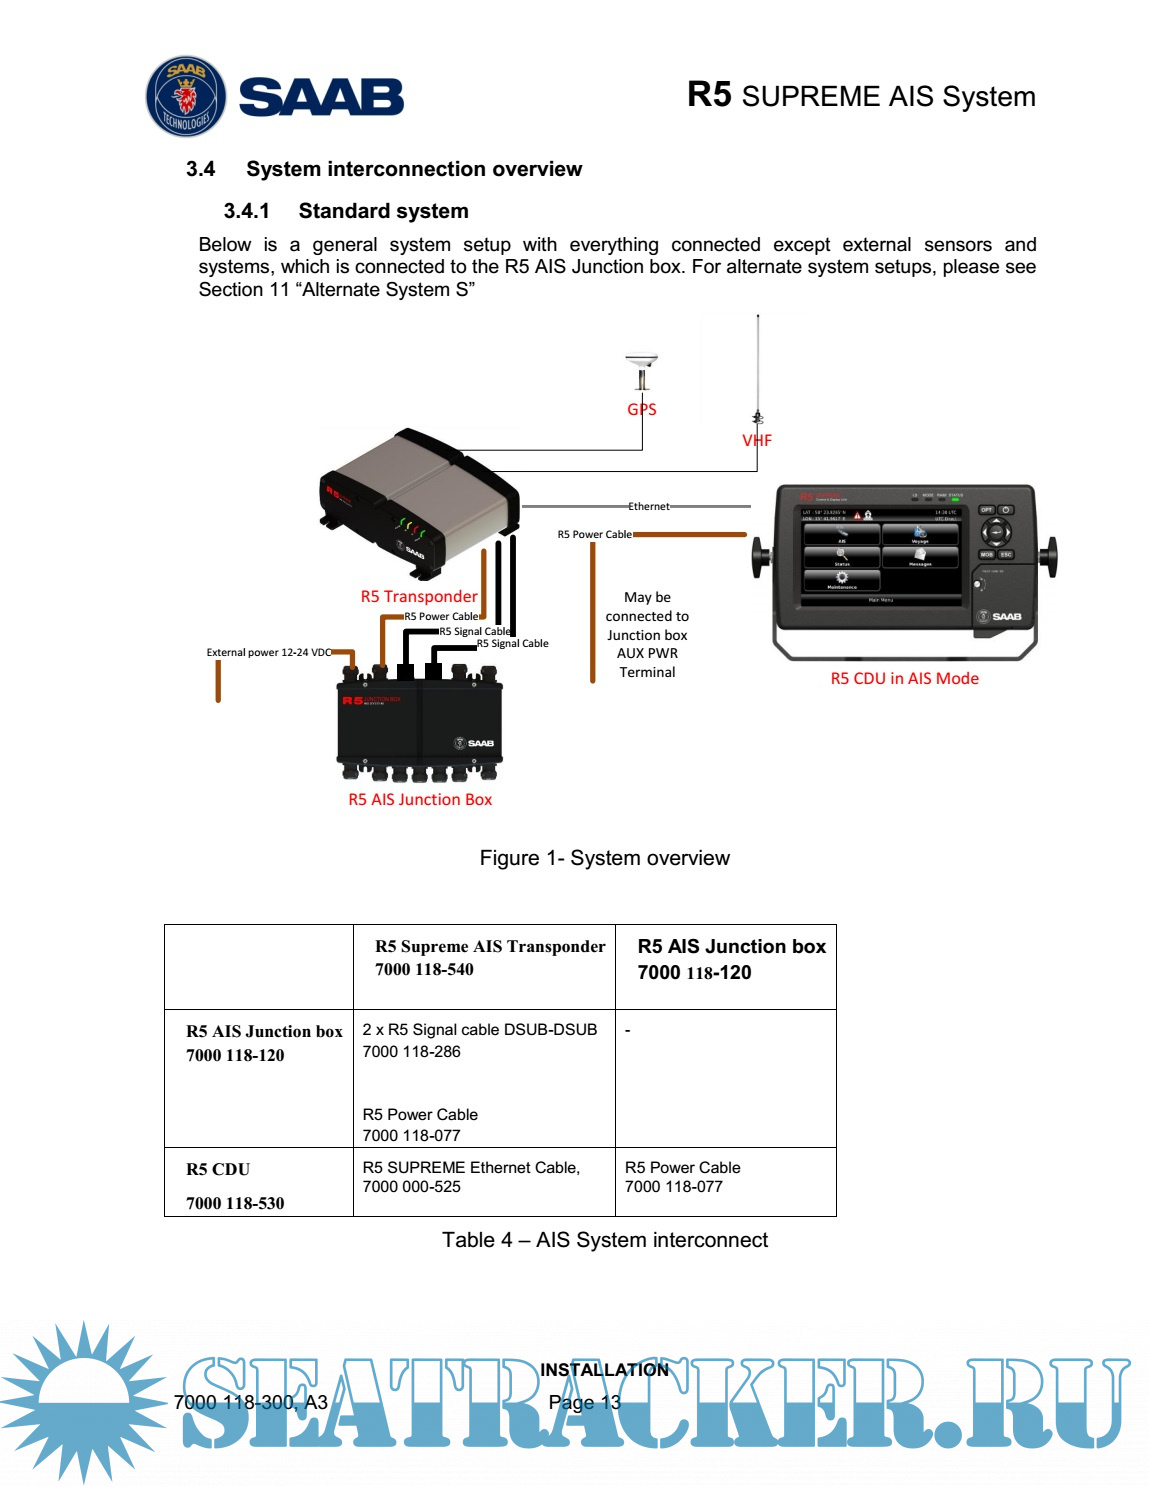 saab transponder system r5 supreme ais operation installation rh seatracker ru saab r4 dgps installation manual